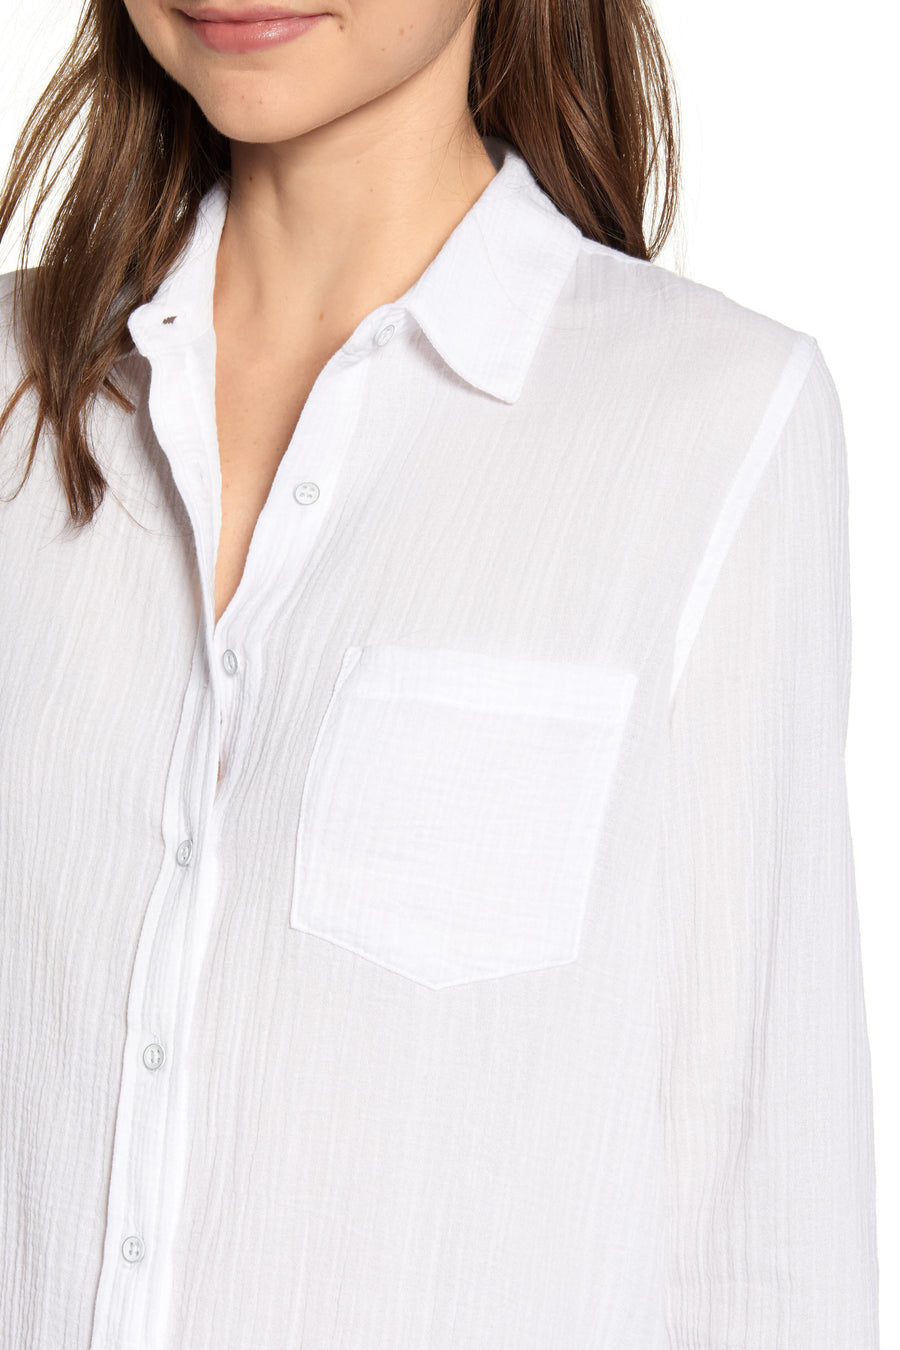 Mercer & Spring Shirt - Crinkled White - Pavilion